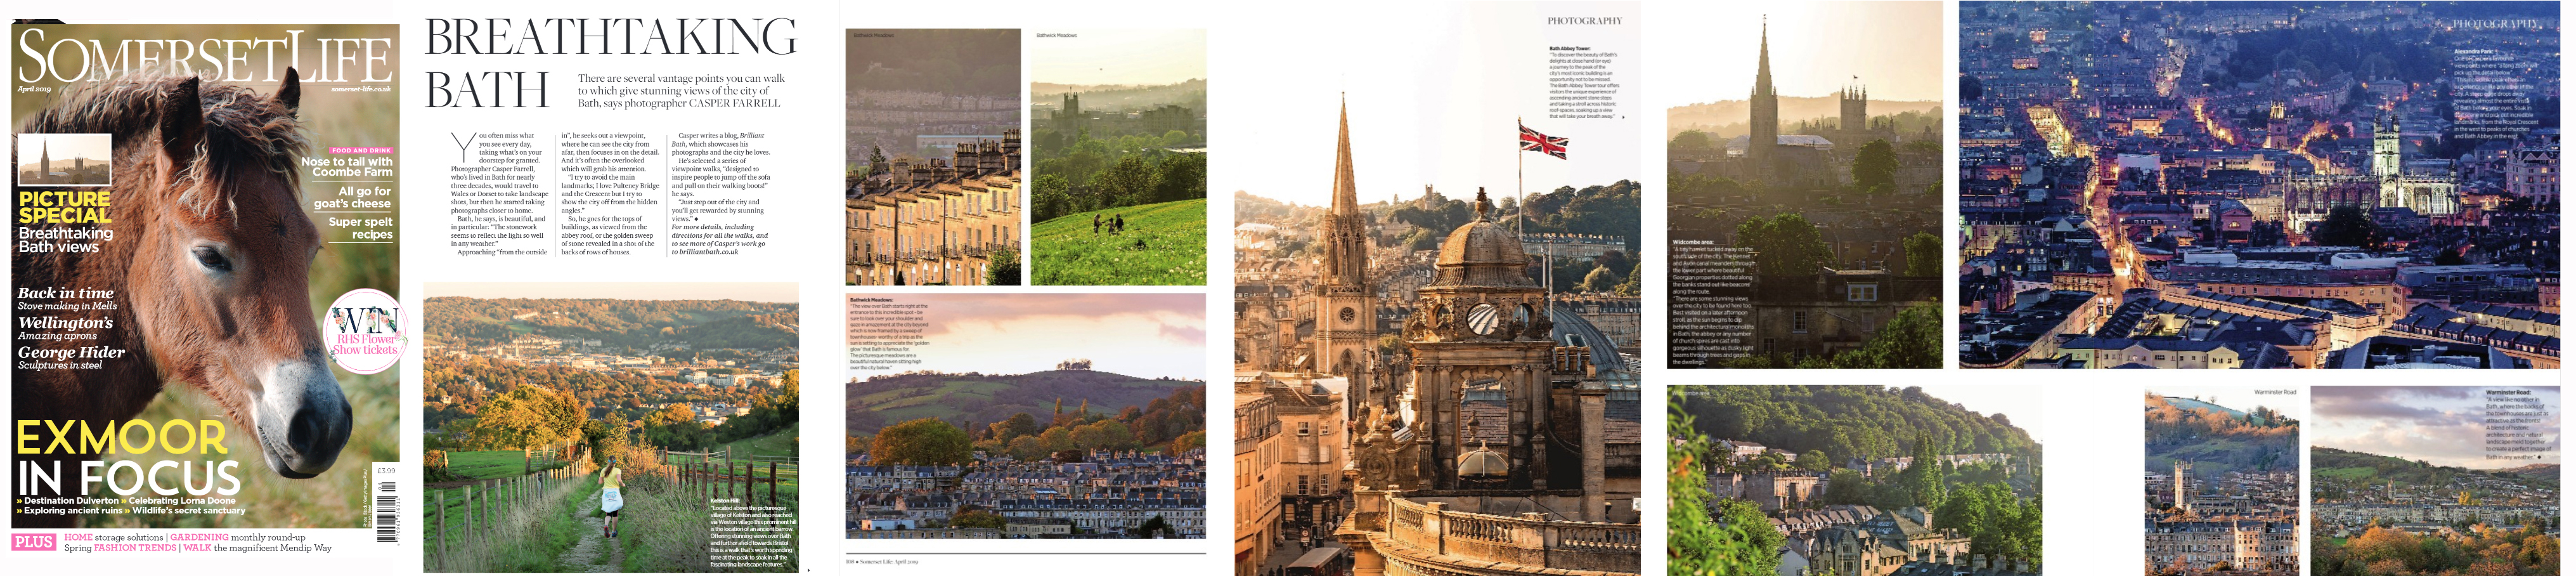 Somerset Life Feature